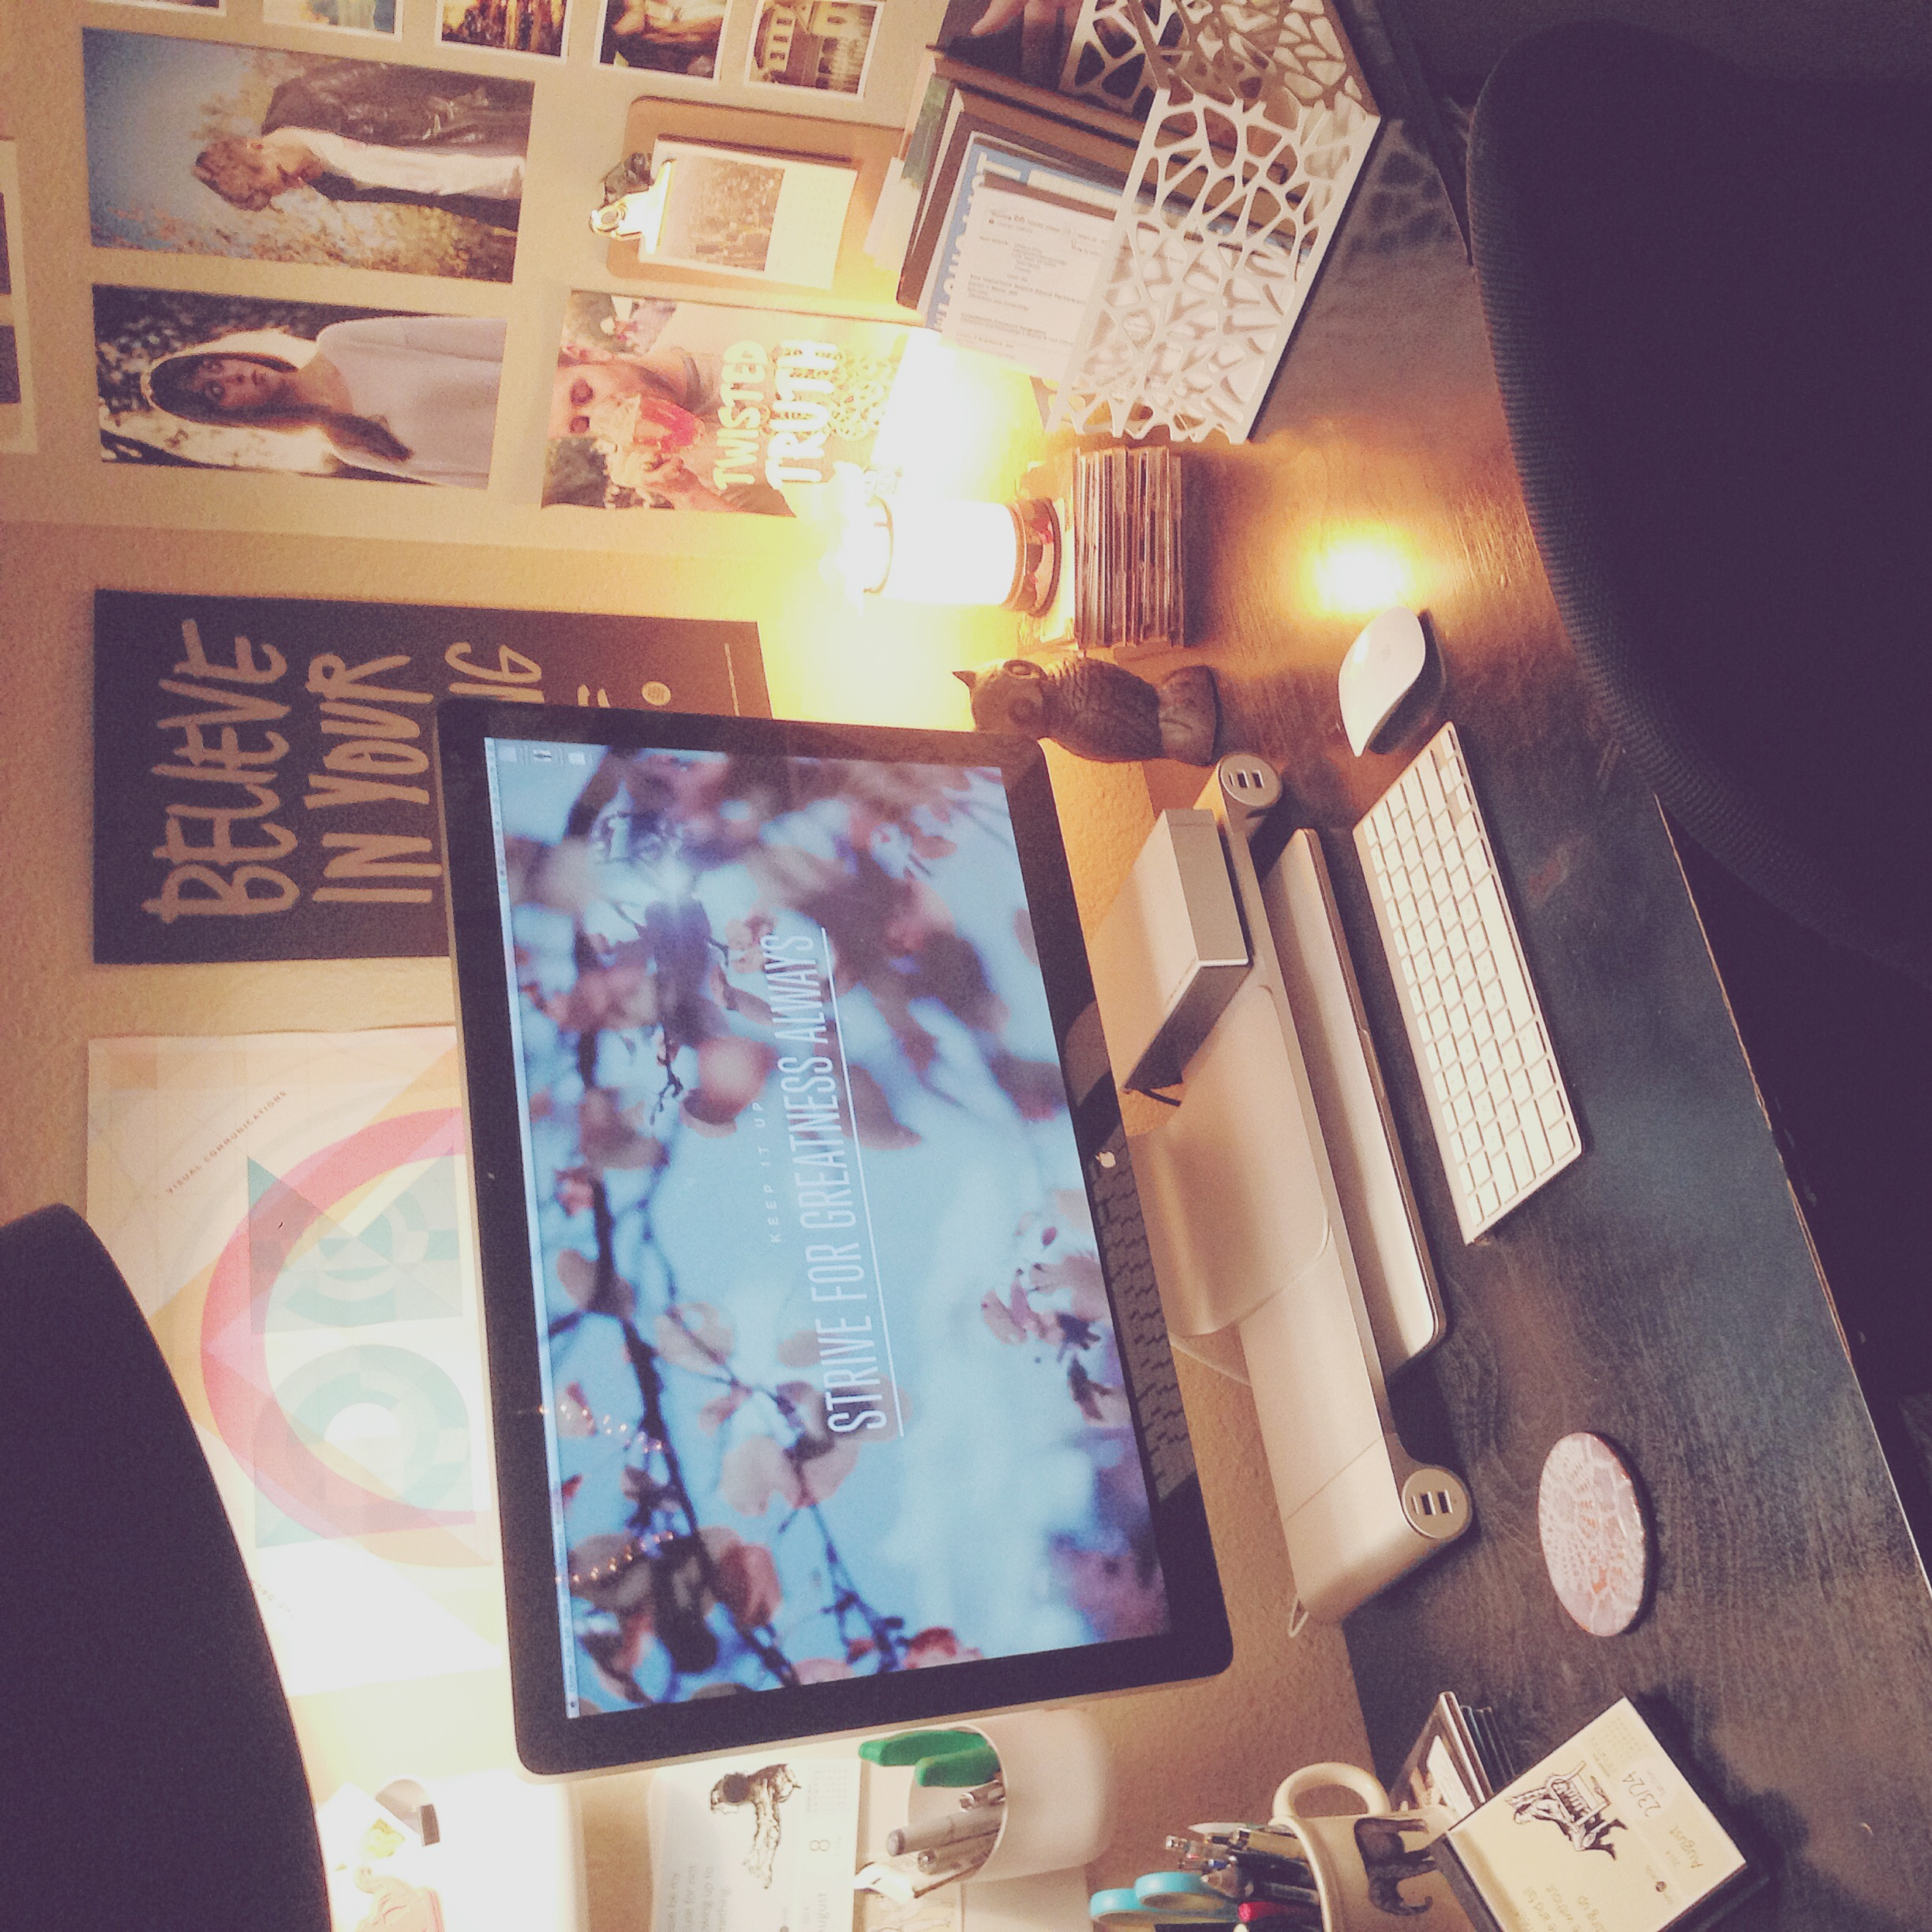 A view of my slightly-cluttered, but totally cozy workspace at home.